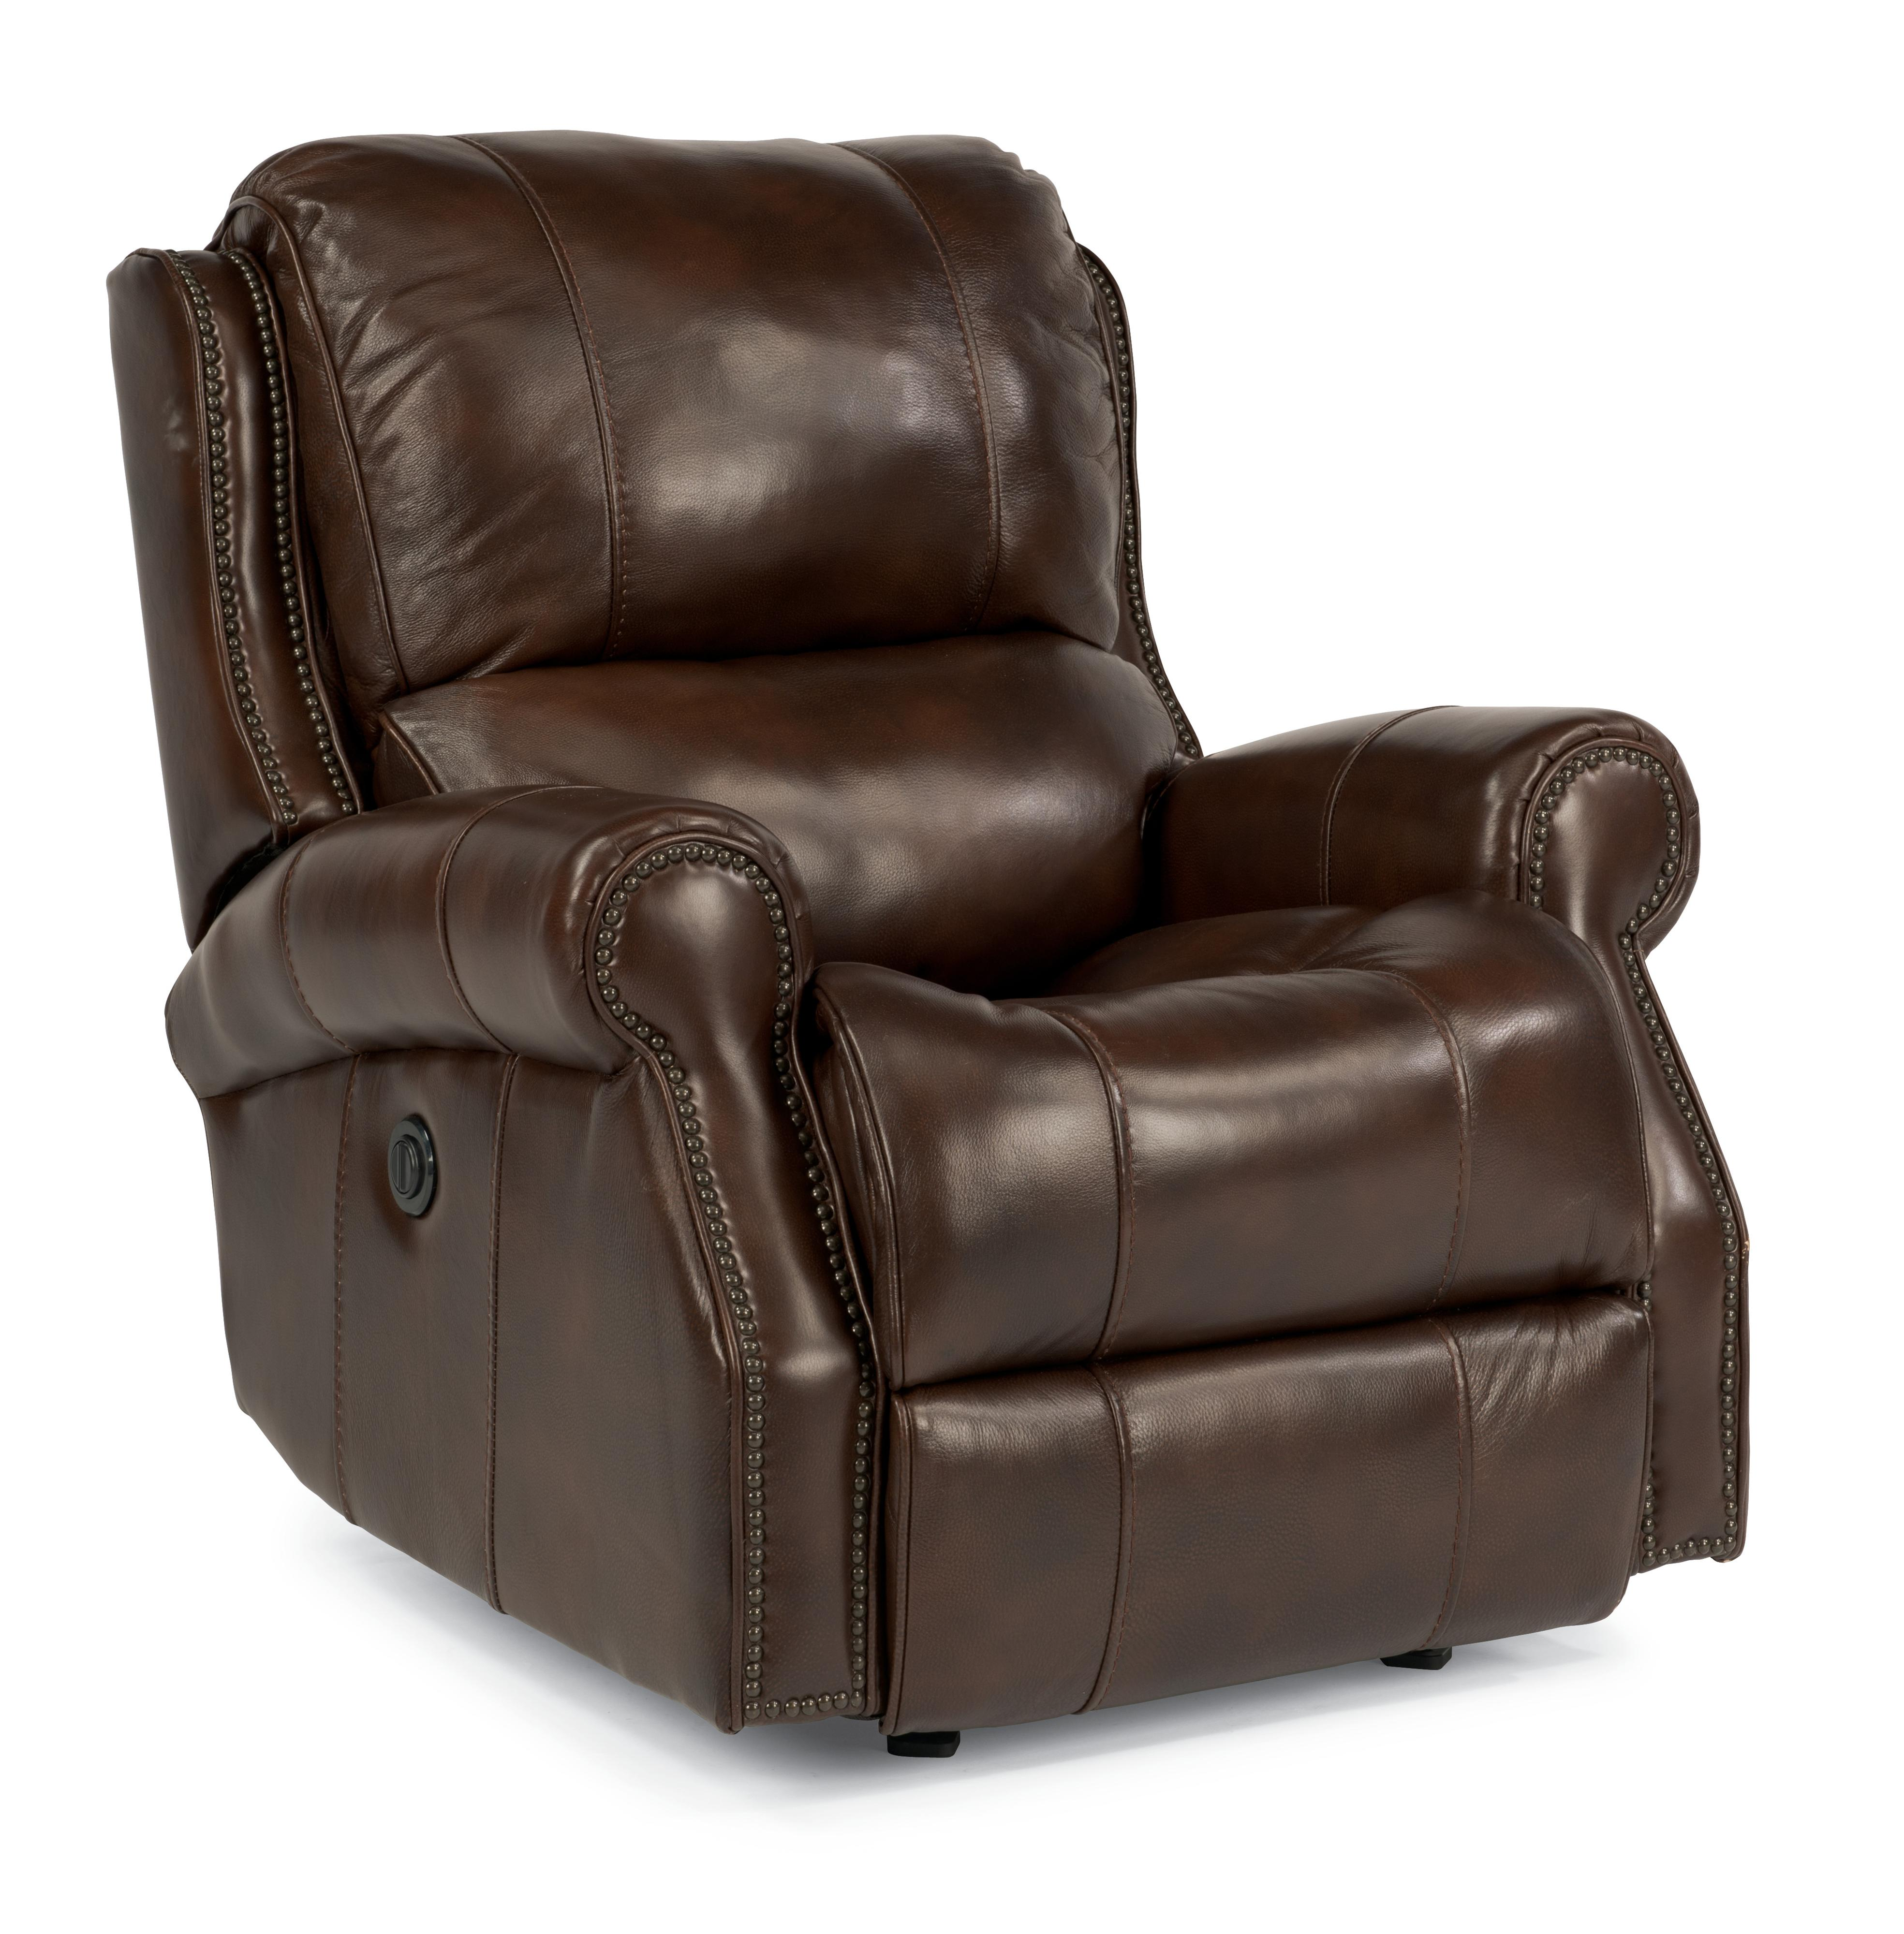 flexsteel chair prices used lifeguard chairs for sale latitudes miles 1533 54p power glider recliner